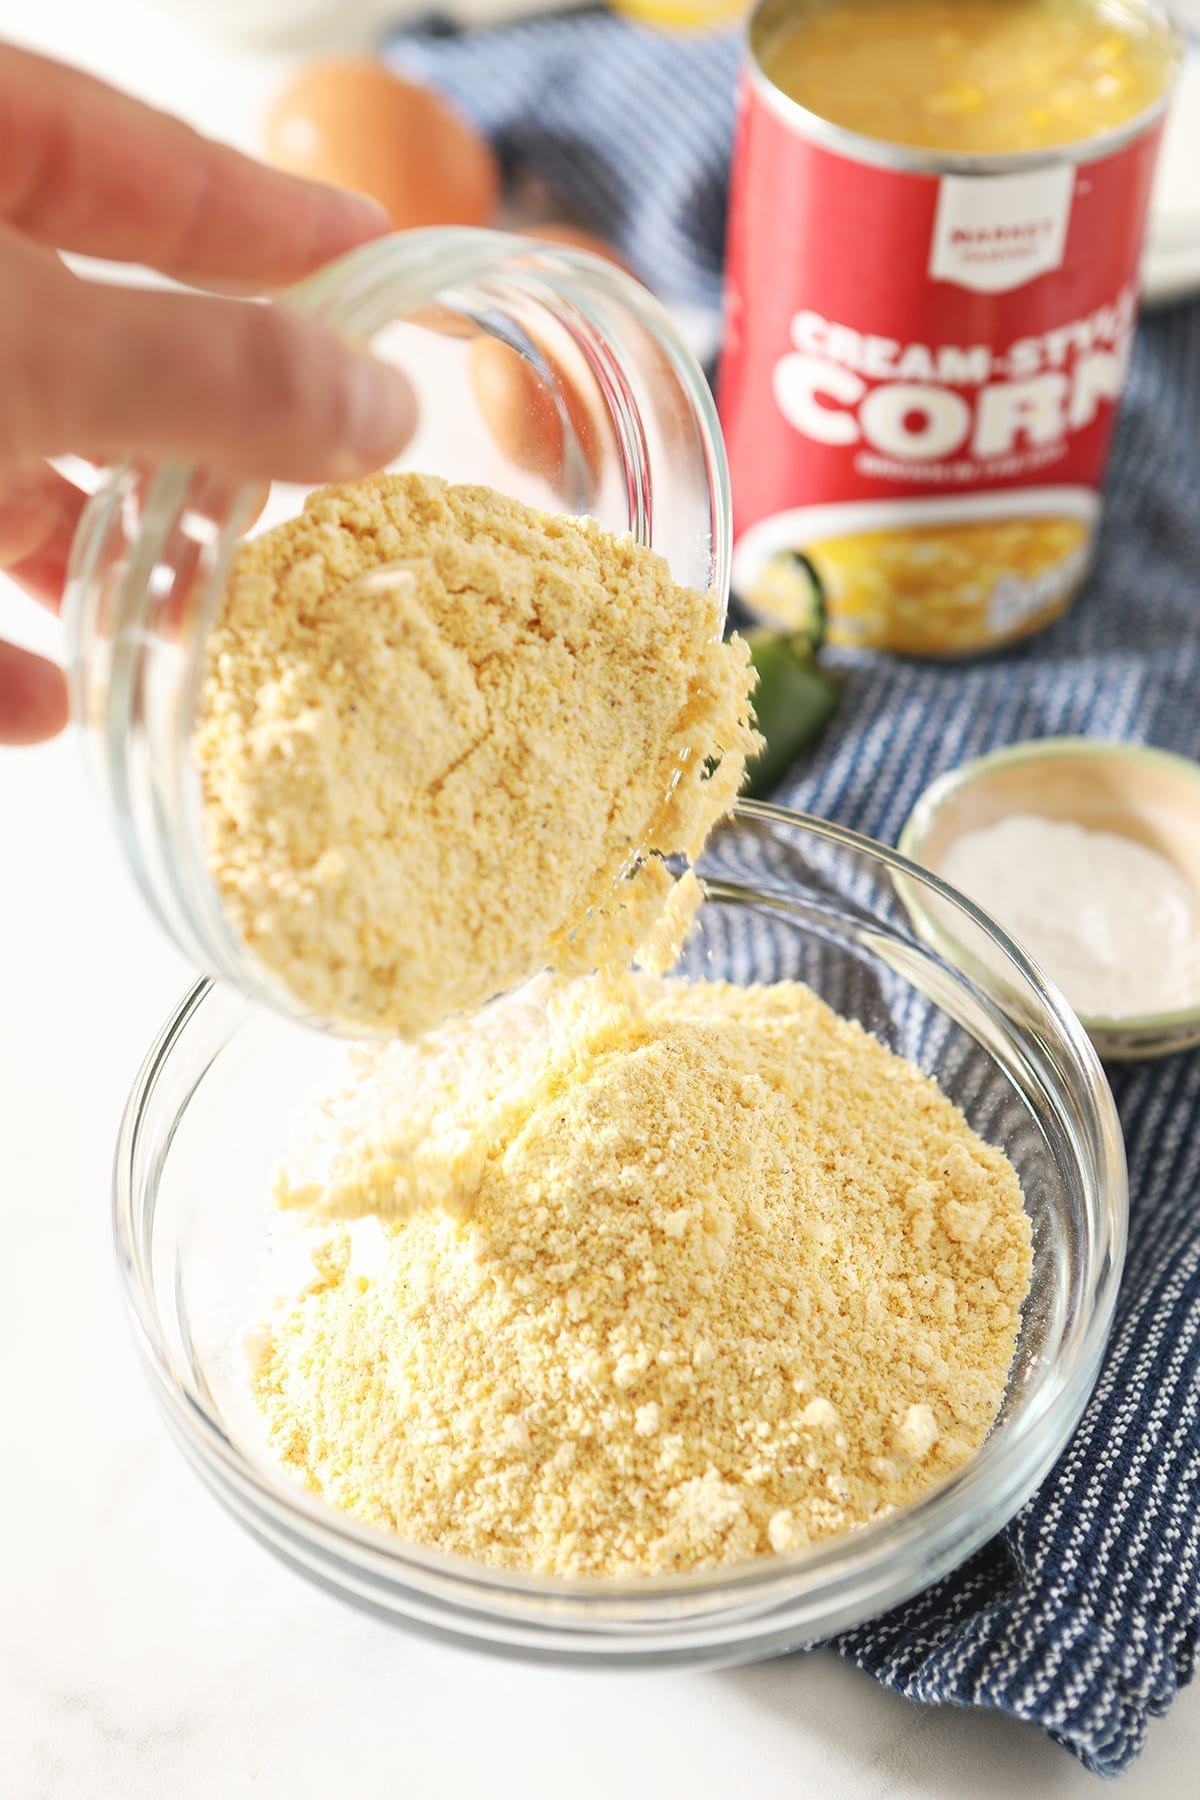 Cornmeal is poured on top of flour in a bowl